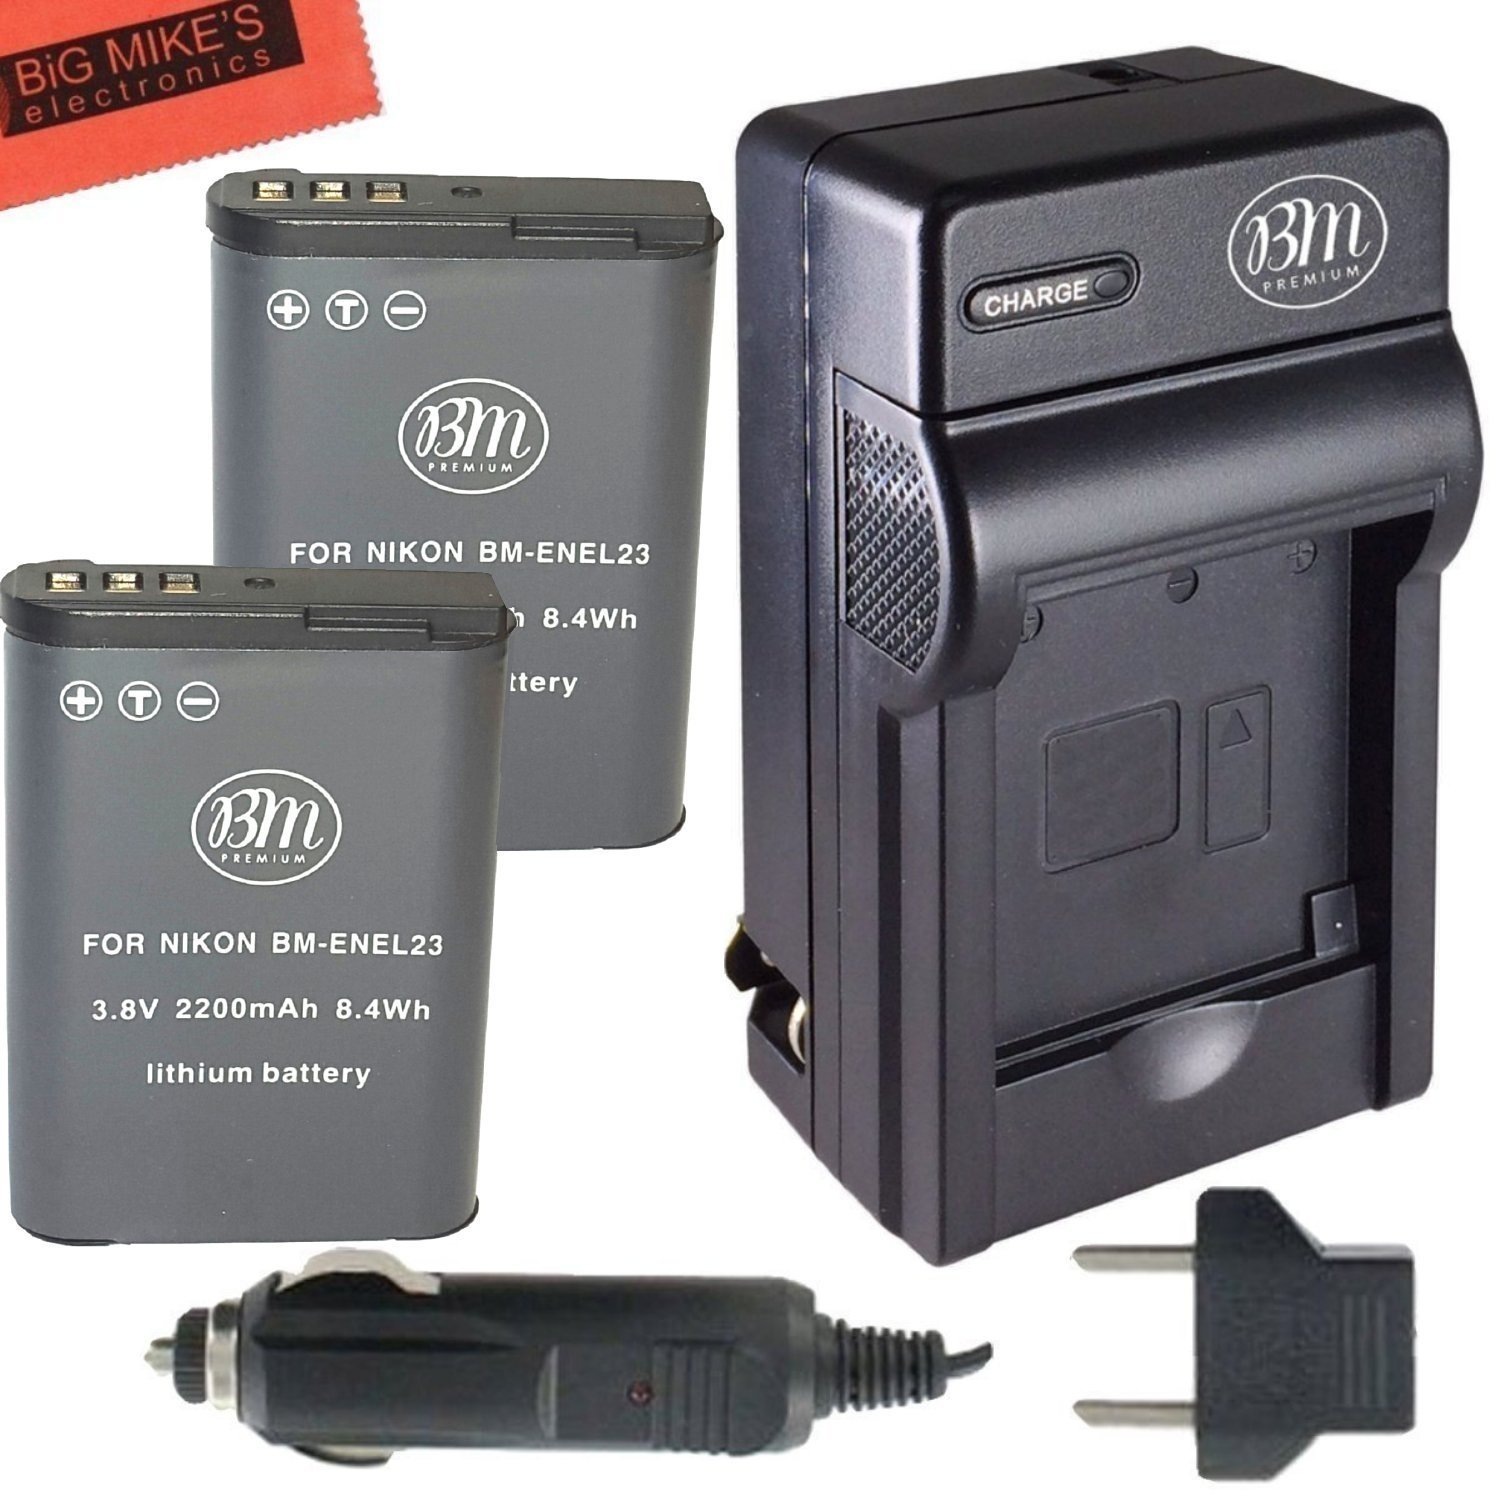 BM Premium 2 Pack of EN-EL23 Batteries and Battery Charger for Nikon Coolpix B700, P900, P600, P610, S810c Digital Camera